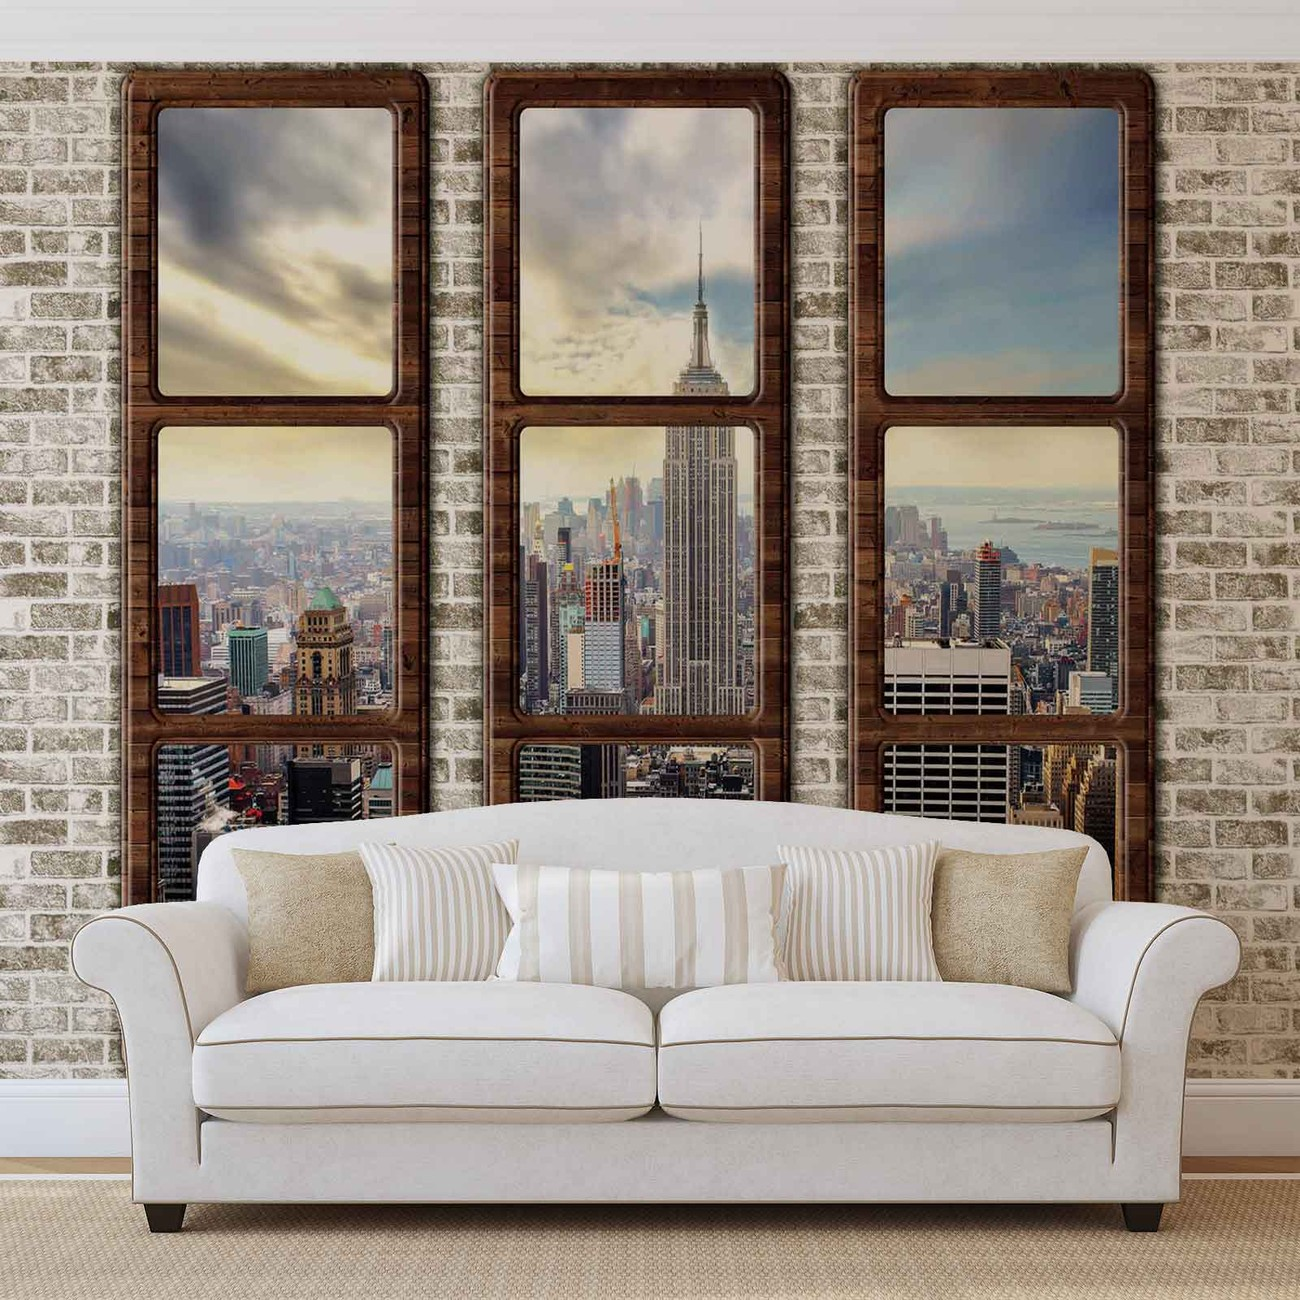 New york city skyline window view wall paper mural buy for Acheter poster mural new york